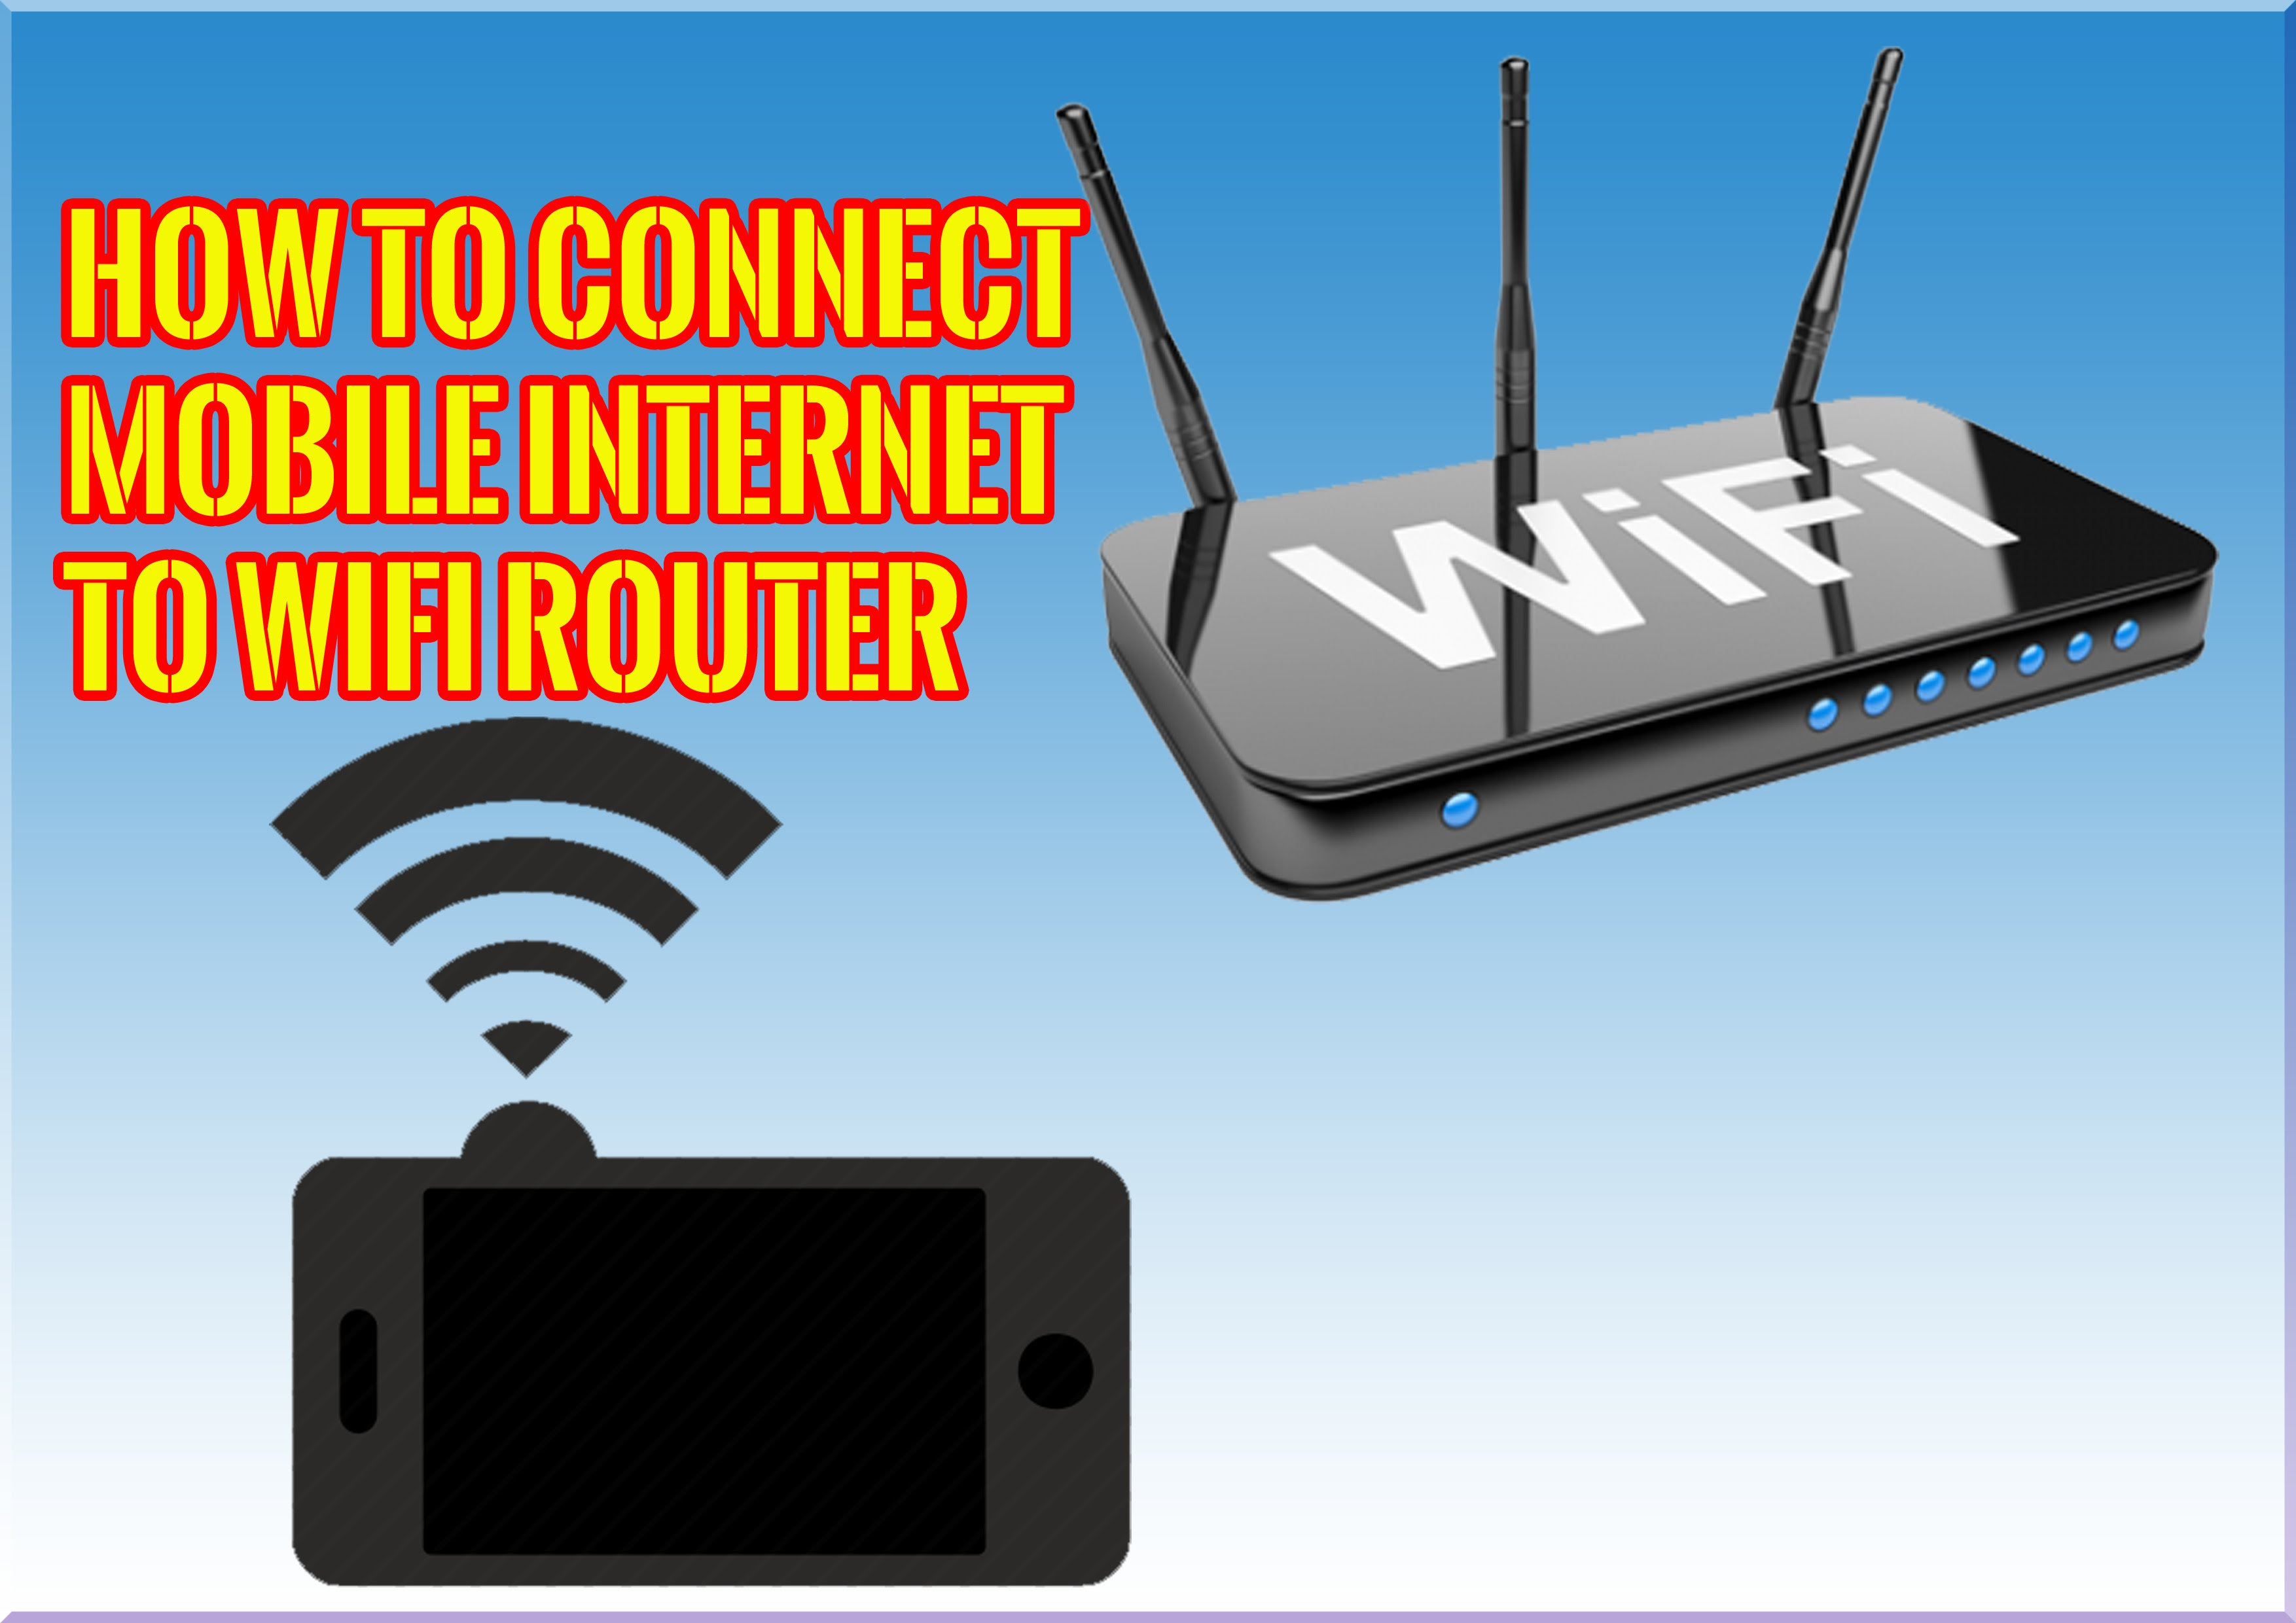 How to Share & Connect 3G / 4G Mobile Hotspot To WiFi Router - Citylogic